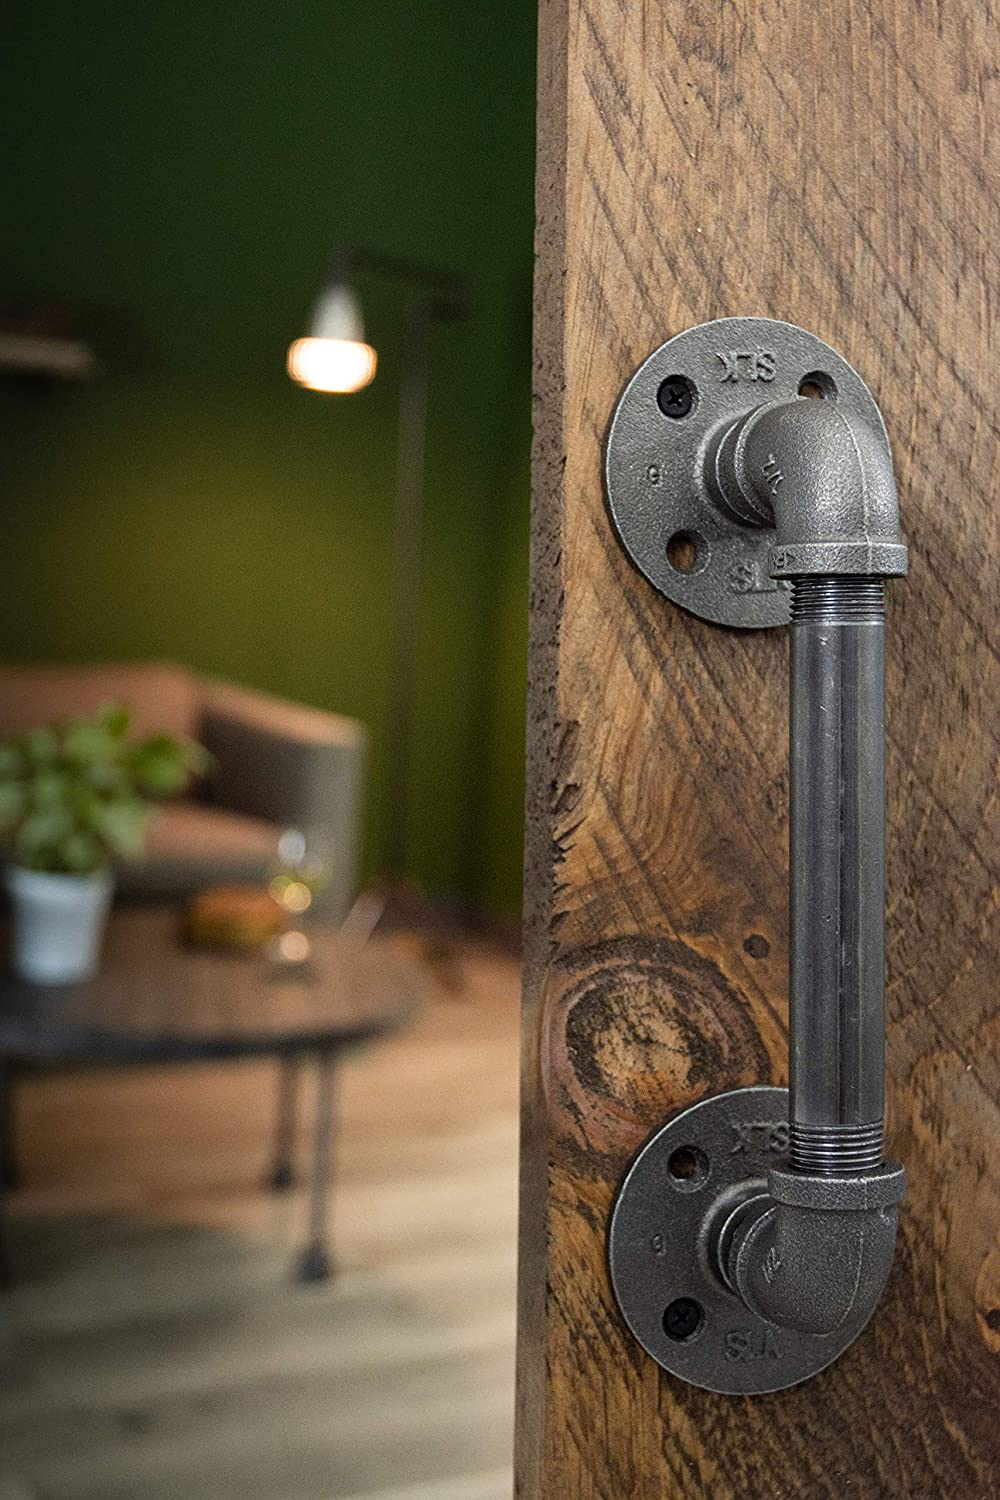 Rustic Industrial Pipe D/écor Barn Door Handle Authentic Industrial Steel Grey Iron Fittings Flanges and Pipes for Custom Vintage Hanging Doors 8 inch DIY Kit with Hardware